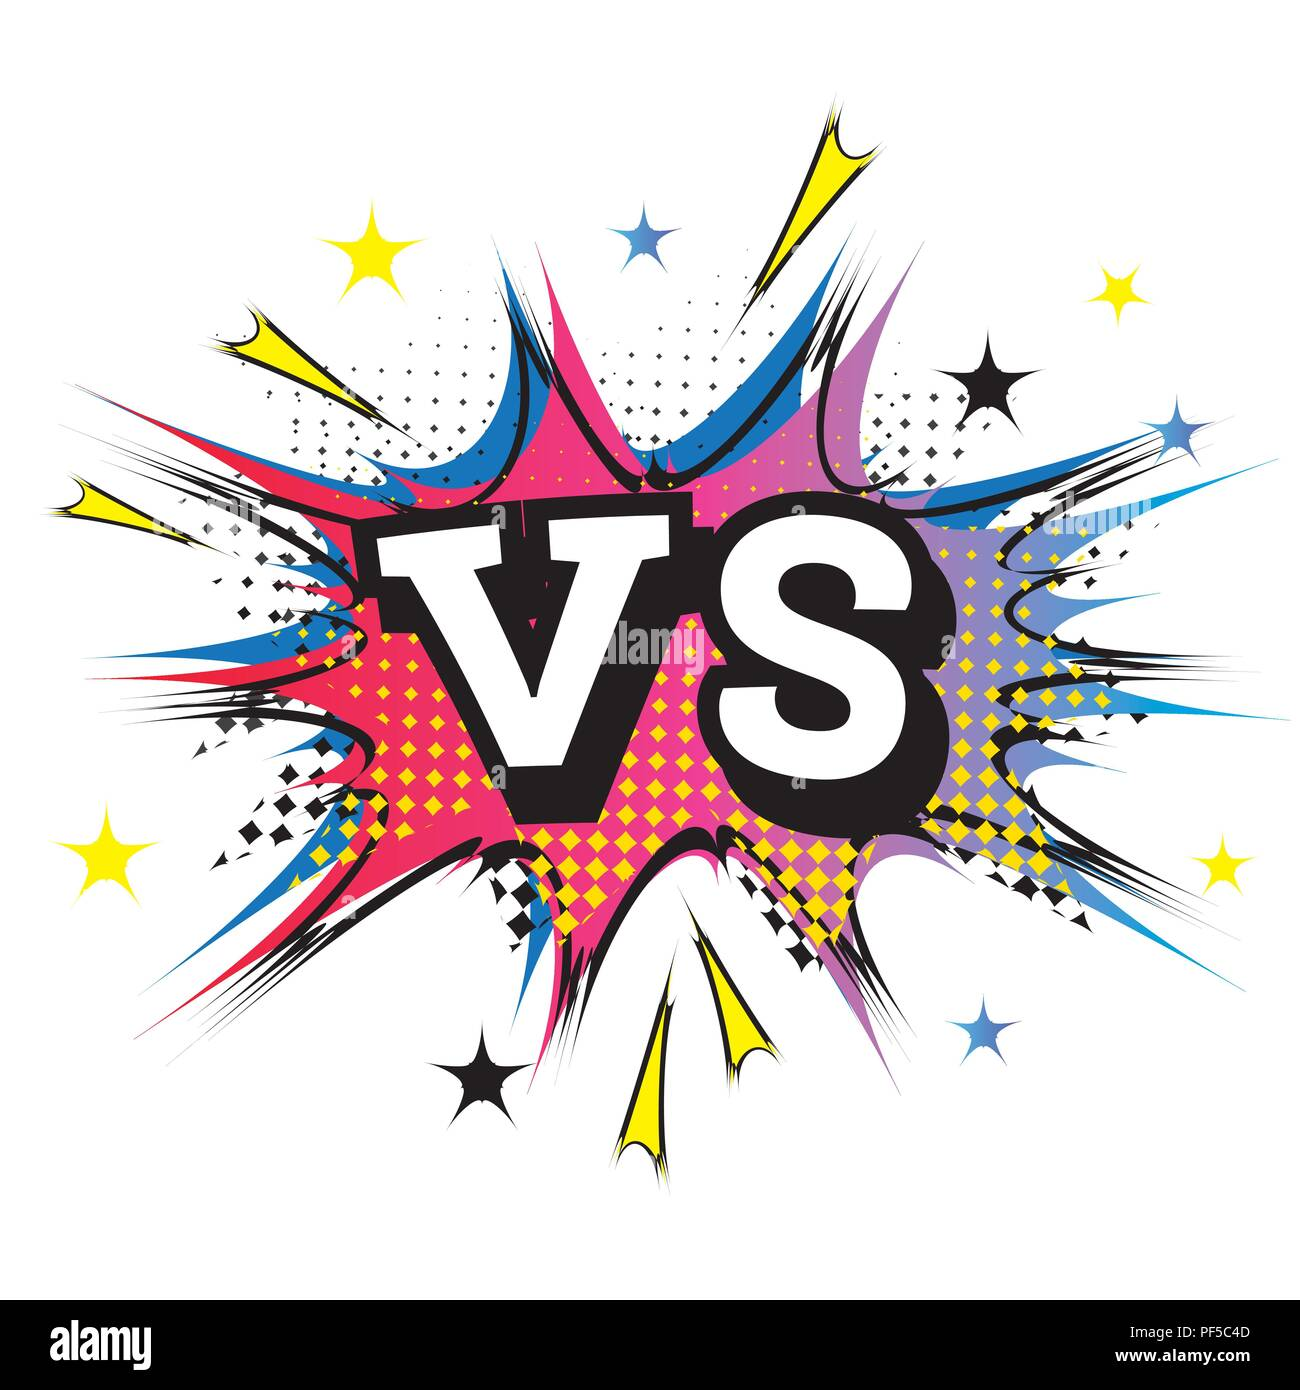 / Vs Versus Letters Or Vs Logo Comic Text In Pop Art Style